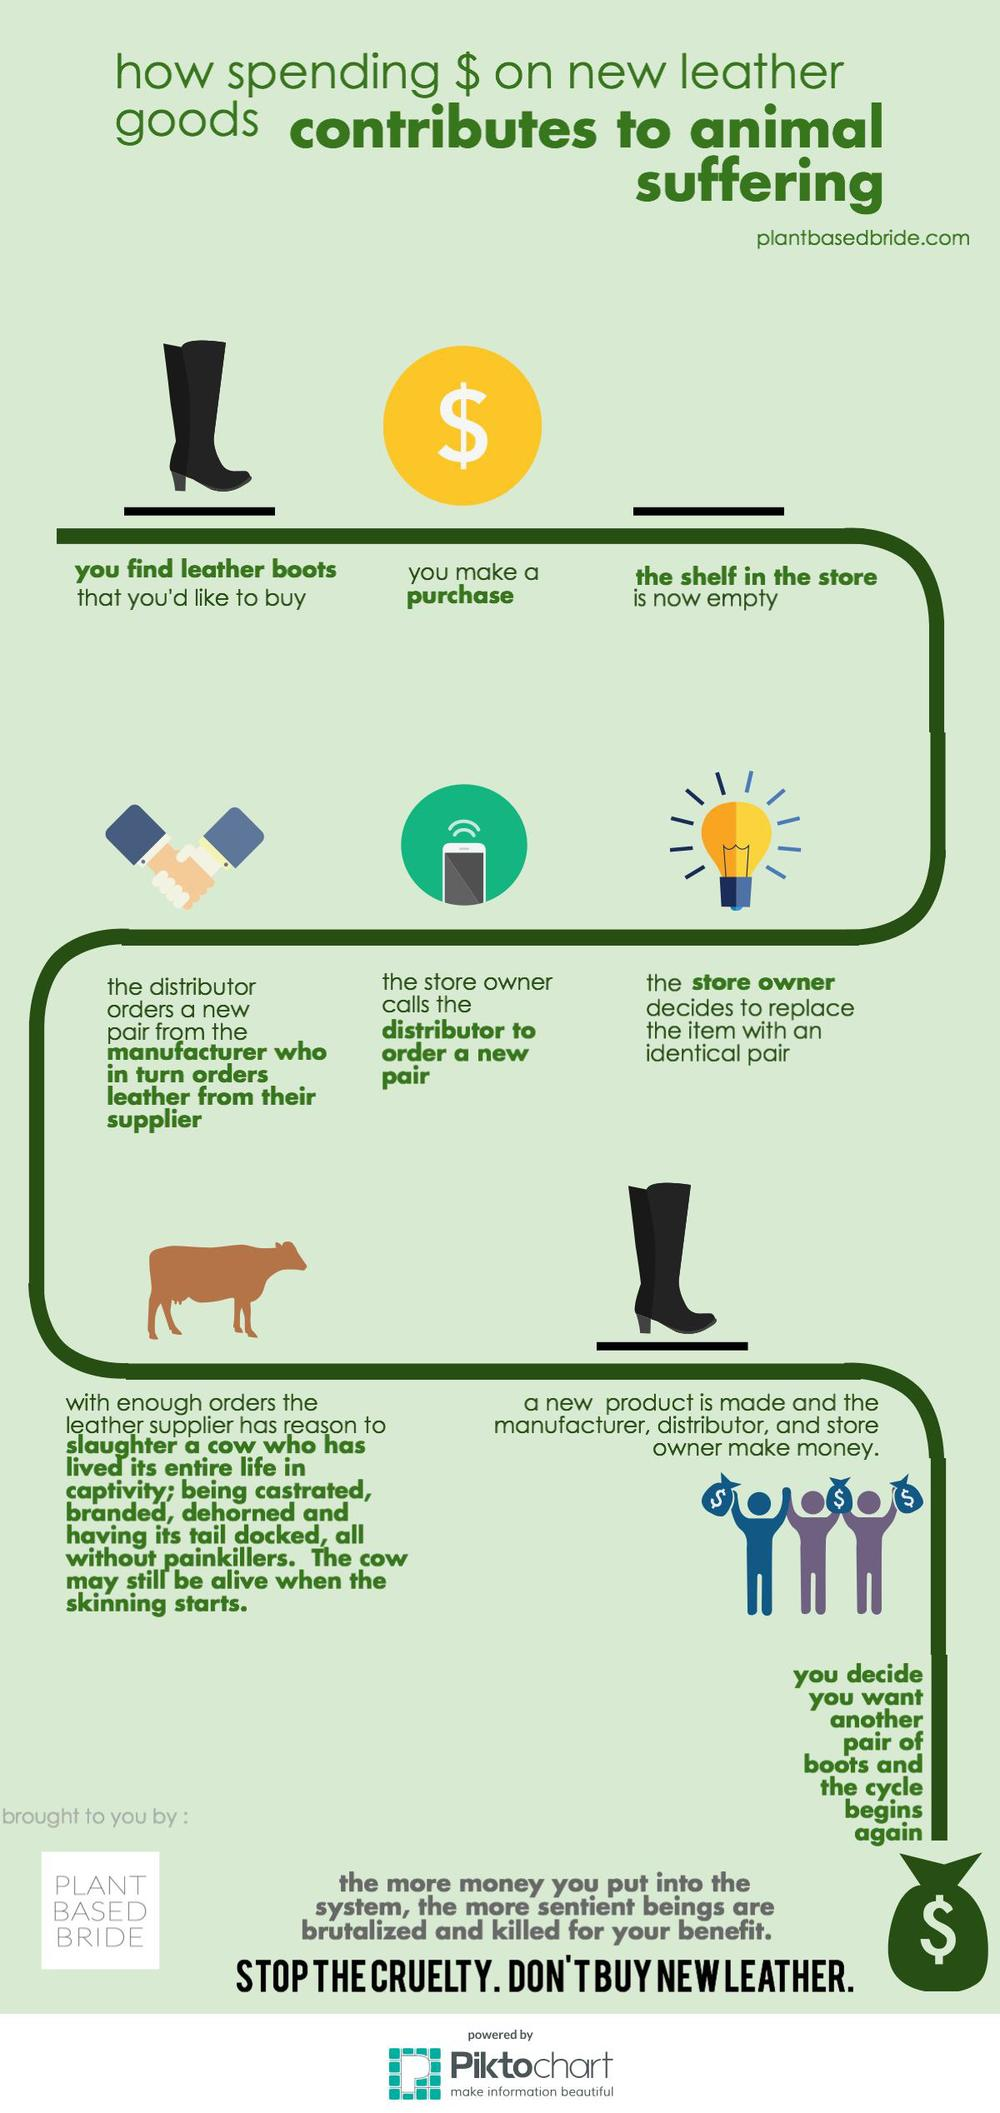 The consumer/animal suffering cycle of the leather industry explained from plantbasedbride.com